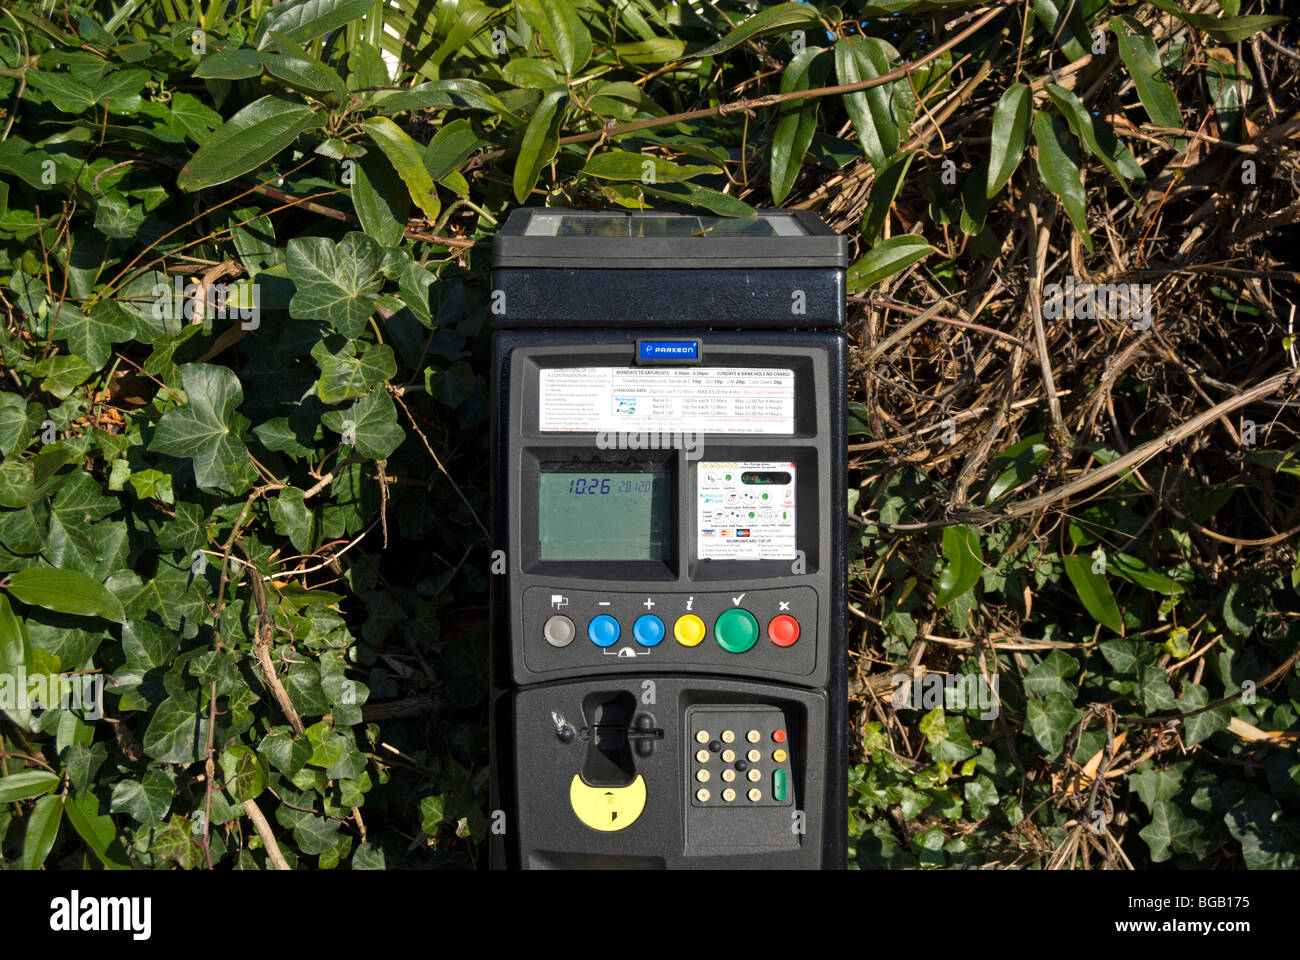 london borough of richmond upon thames parking meter standing against tall shrubbery - Stock Image